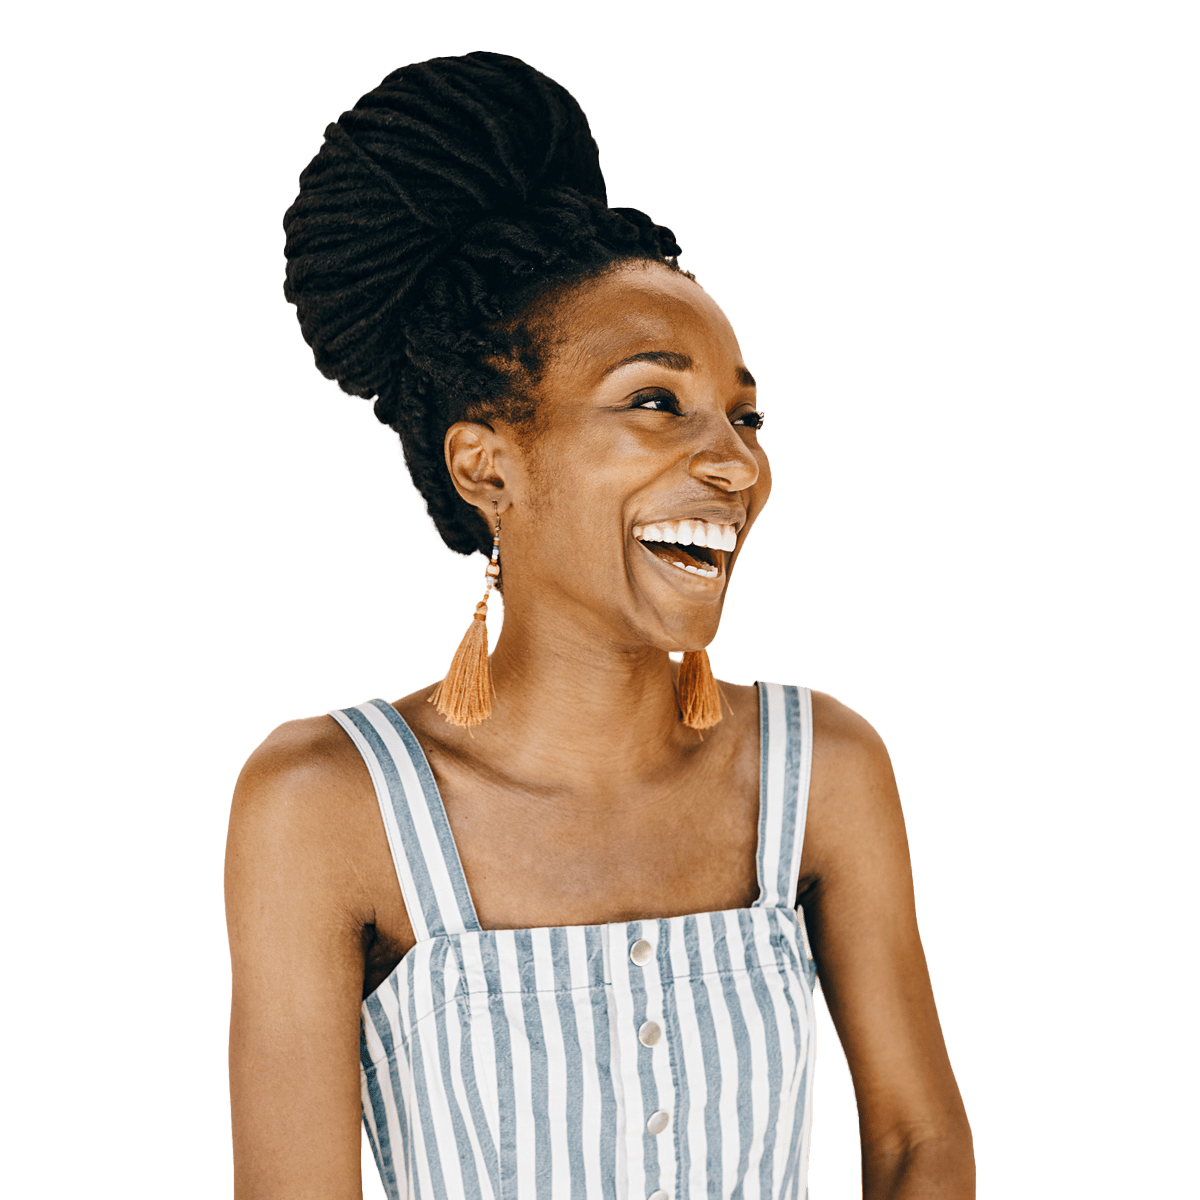 Woman in striped shirt looking off to the side smiling and laughing.